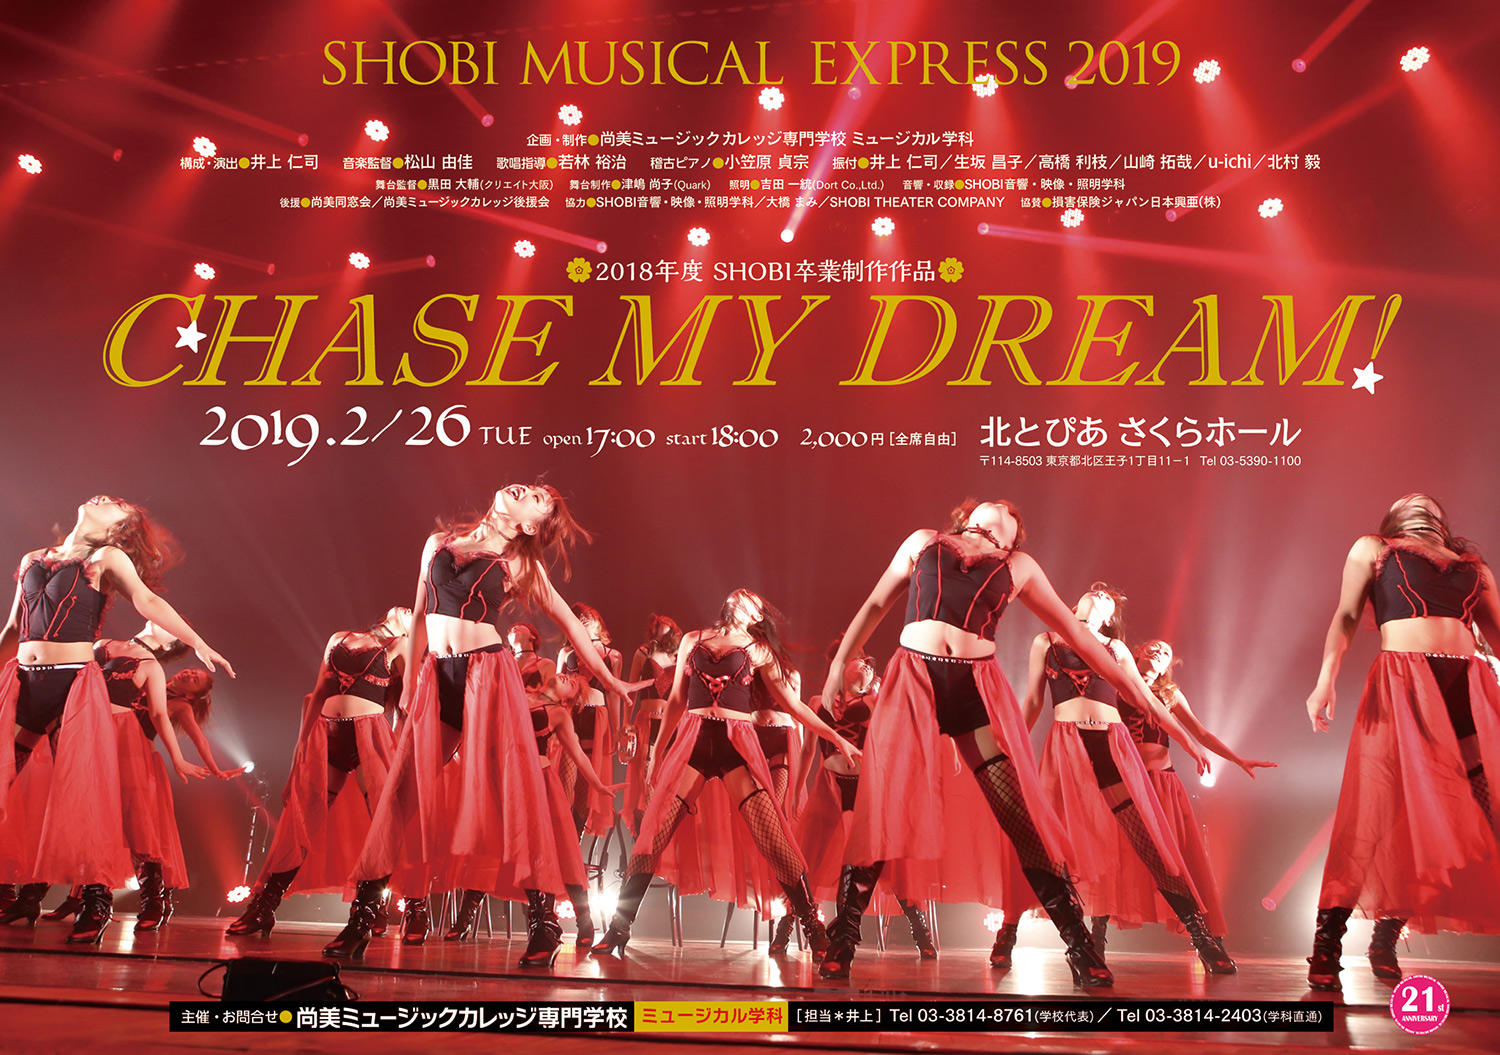 https://www.shobi.ac.jp/event/20190226_mu_chase-my-dream_01.jpg